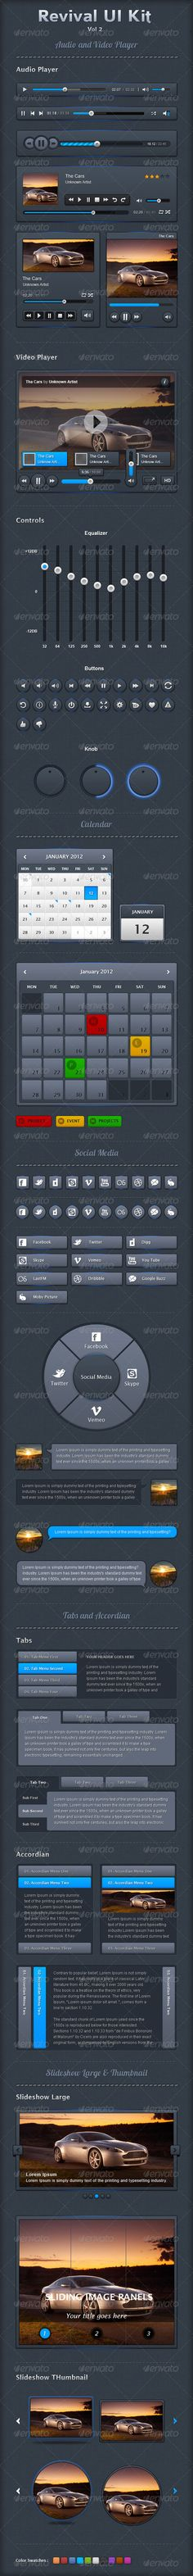 A pack of Audio Video Players, Calendar, Social Media, Tabs & Accordian and Slideshow large and thumbnail.  - Perfect organized PSDs. - Each and every layer have appropriate name. - 100% editable photoshop vector shapes. - Uses free available fonts. - Each bar is fit in 960px grid view.  Please follow the below link for download Revival Ui Kit Vol 1: http://bit.ly/Kahh4Z